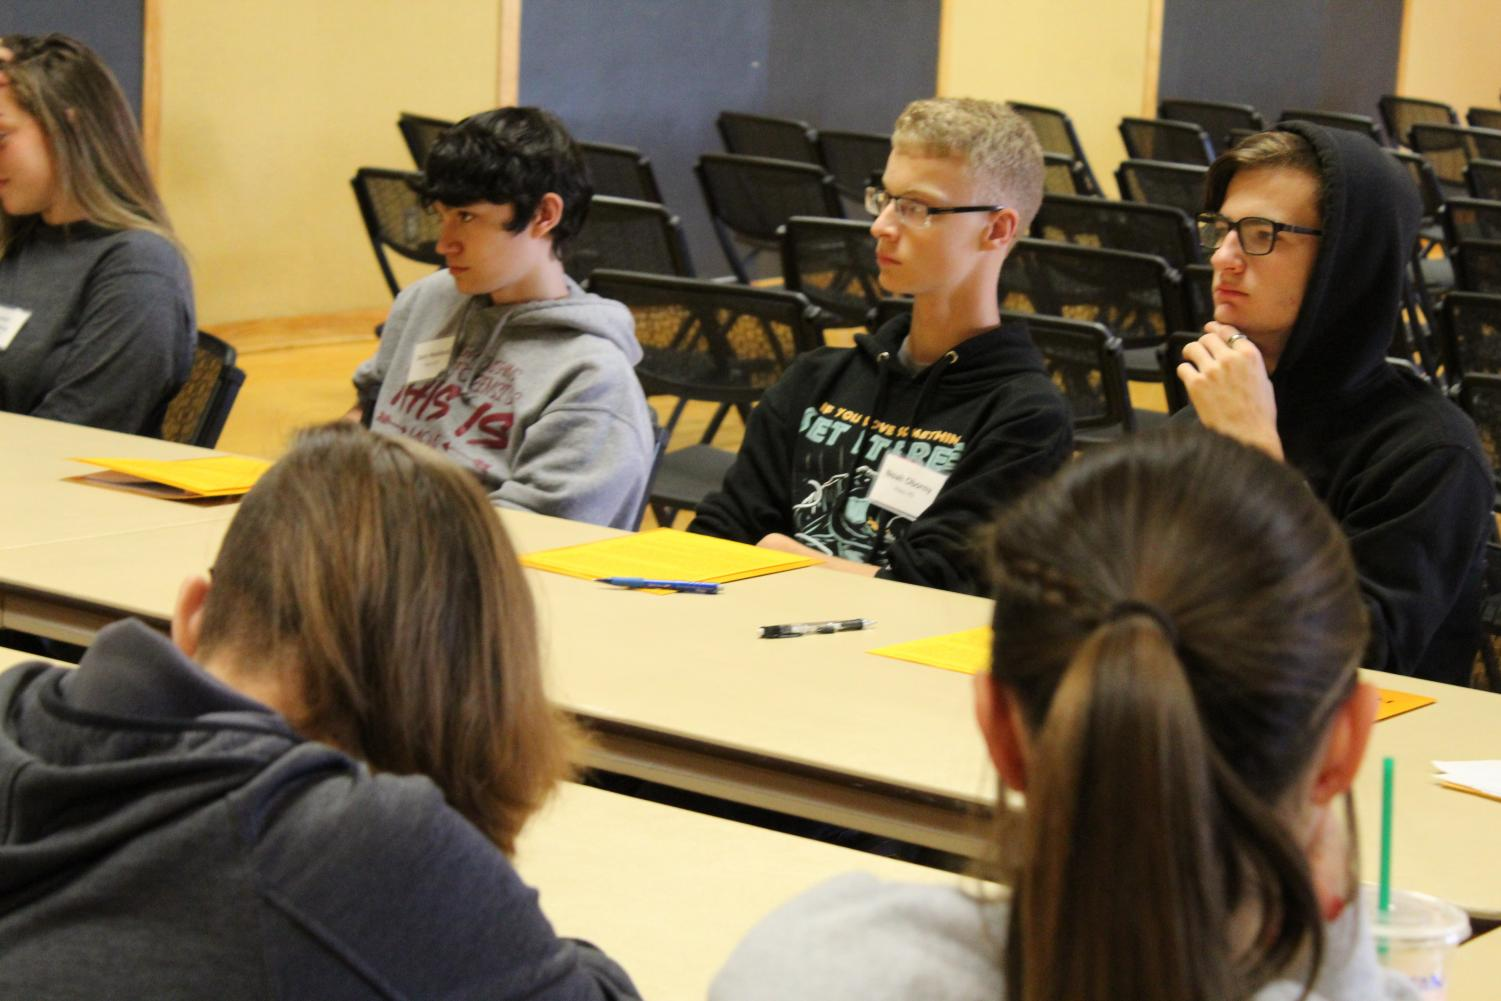 Seniors Jace Hesford, Noah Oborny, Elliot Hoar participate in a small group afternoon session for Philosophy Day. The event took place on Oct. 9 at Fort Hays State University in the Memorial Union.